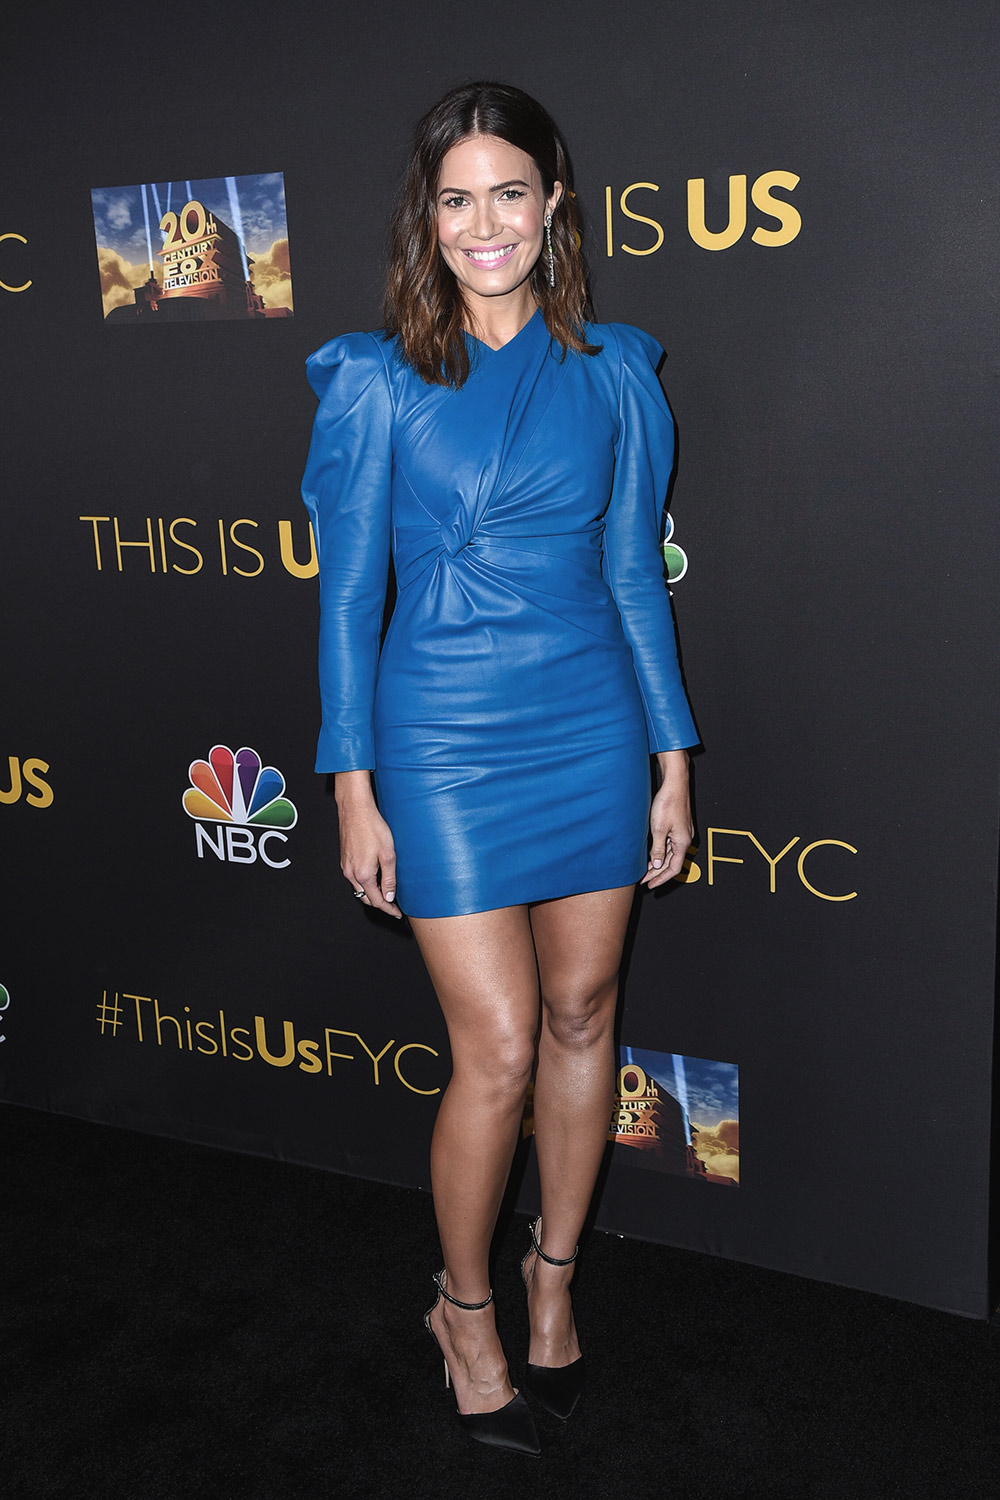 Mandy Moore attends 20th Century Fox Television & NBC's This Is Us